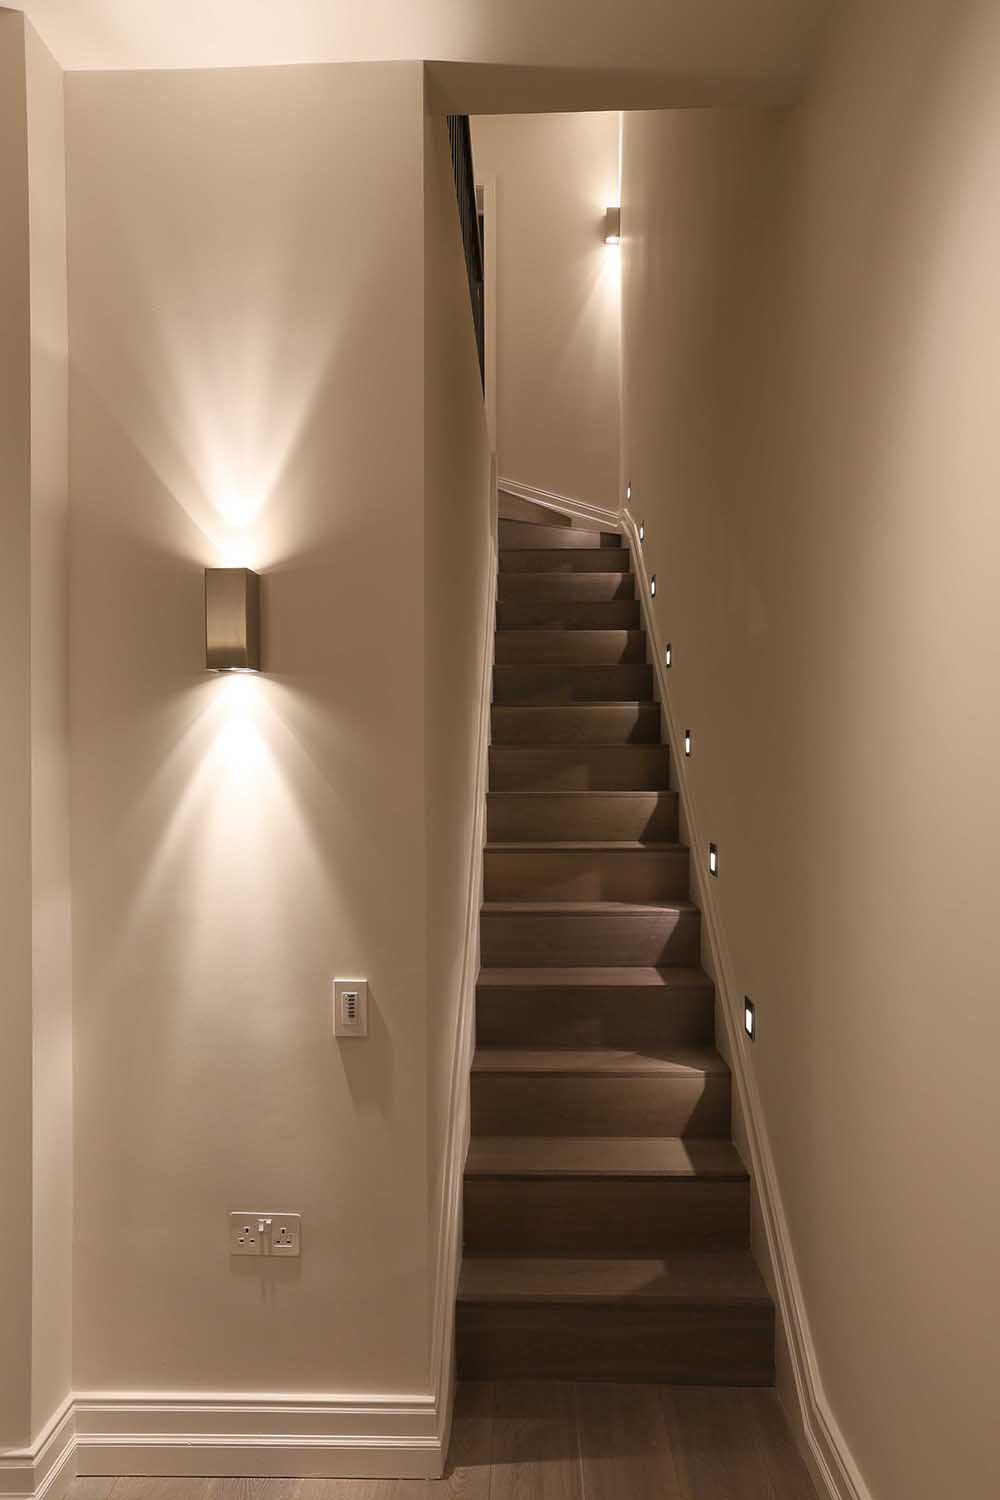 Lighting Basement Washroom Stairs: Interior Wall Sconce Wall Step Light For Staircase